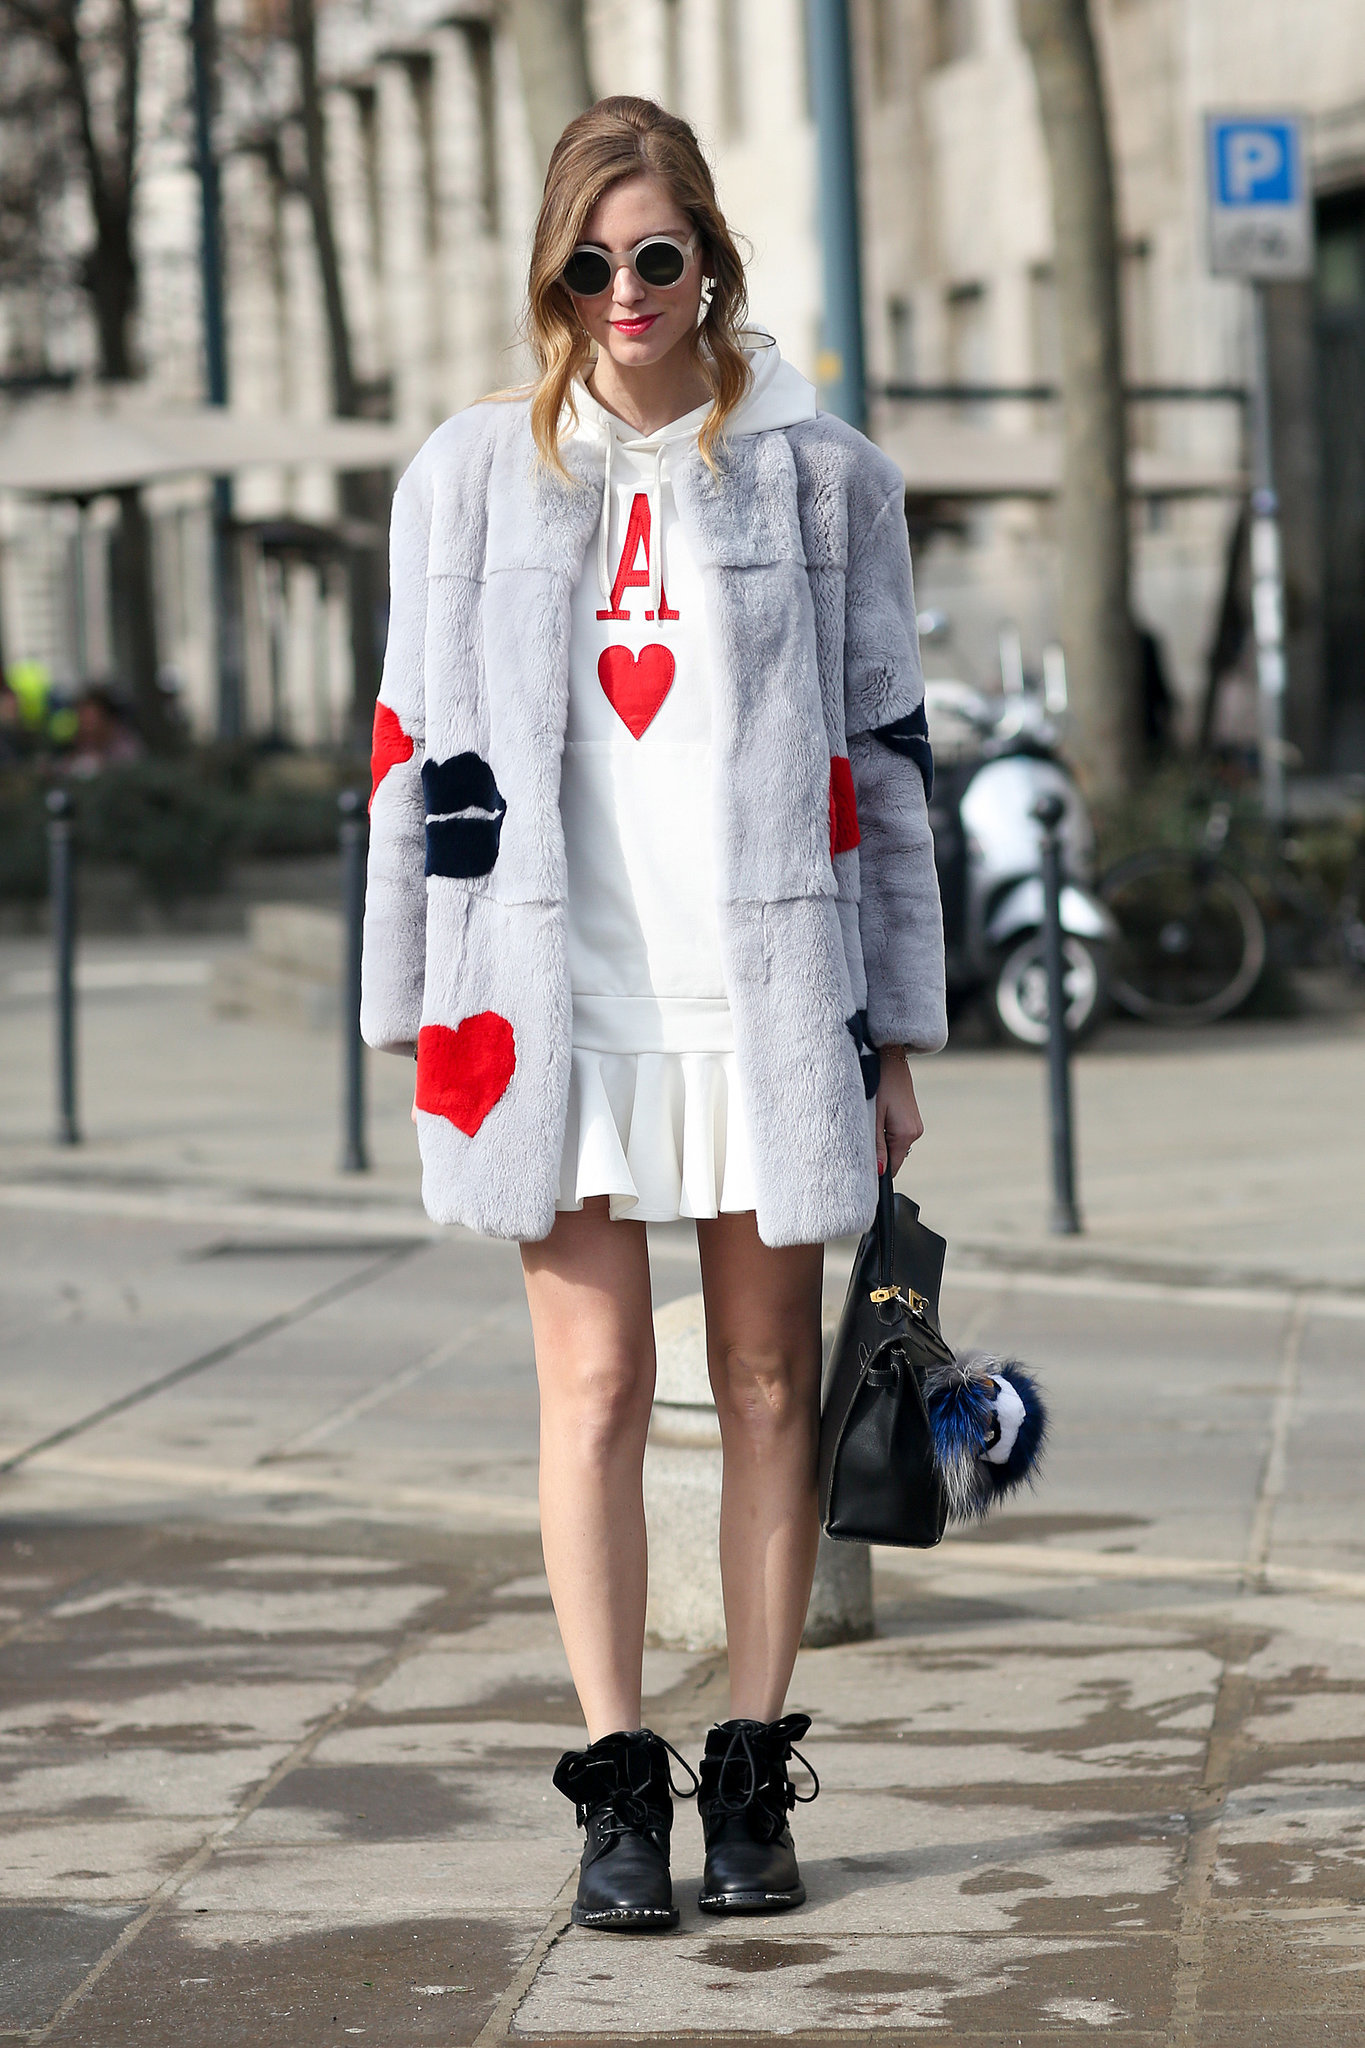 Milan fashion week street style over 100 of milan 39 s for When is fashion week over